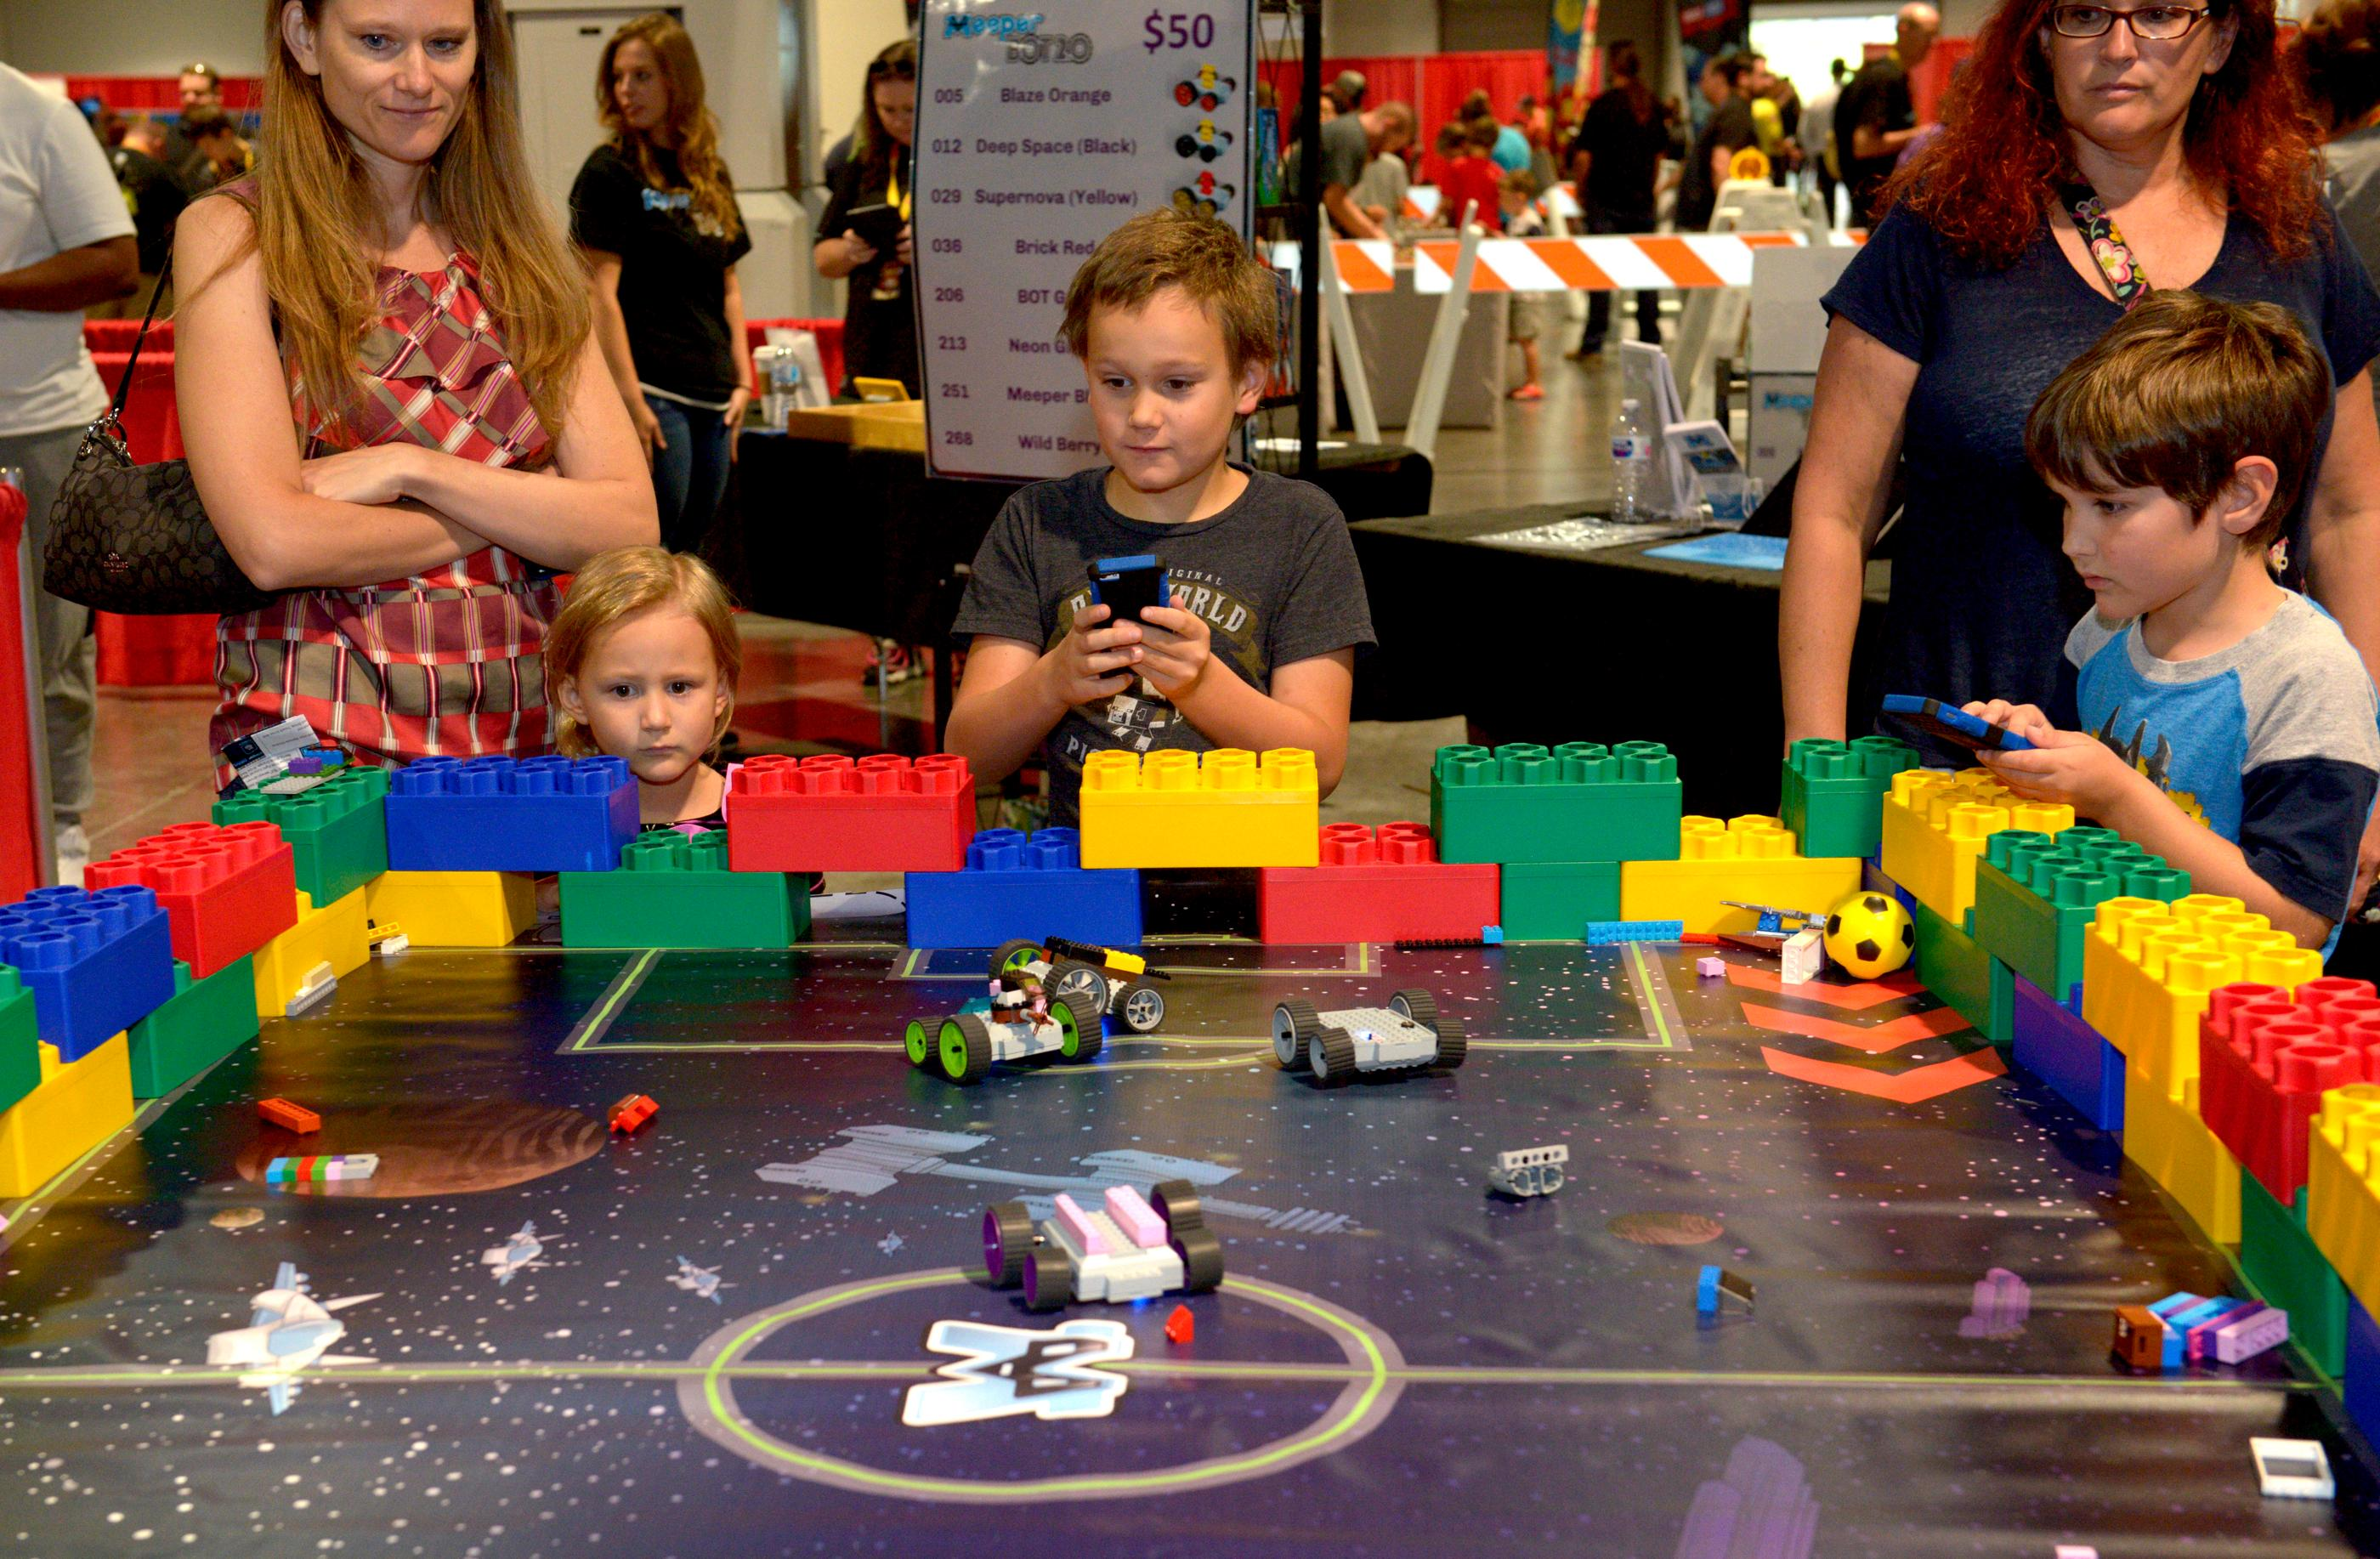 Meeper Mania lets fans play with motorized Lego cars that are controlled by an AP downloaded to their cell phones during the Brick Fest Live Lego Fan Experience at the Las Vegas Convention Center, September 9, 2017. [Glenn Pinkerton/Las Vegas News Bureau]